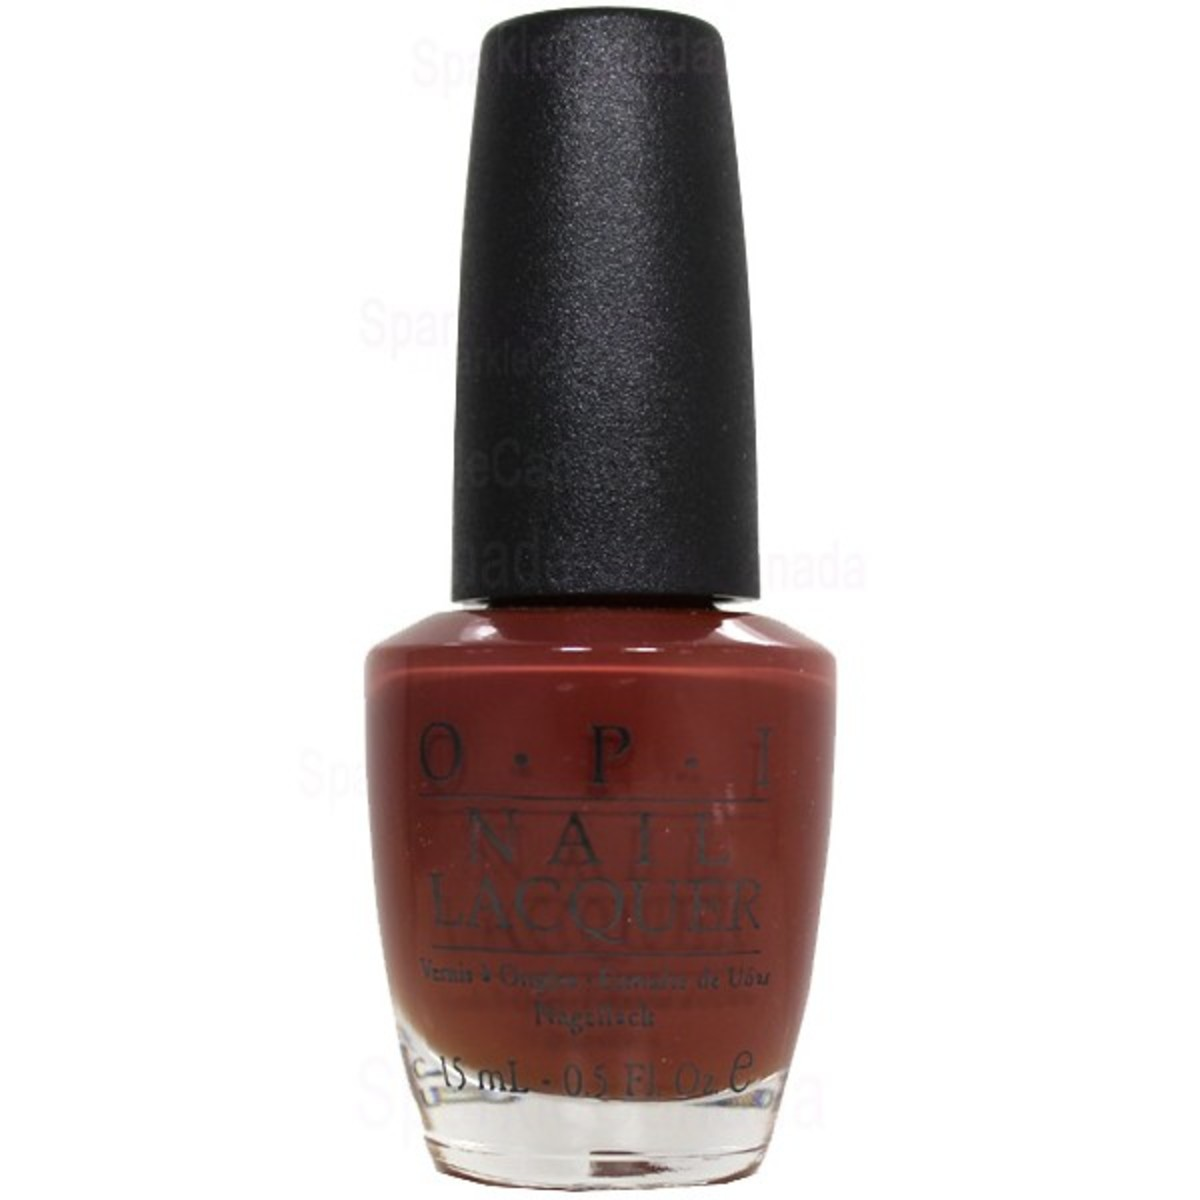 OPI Decades of Shades